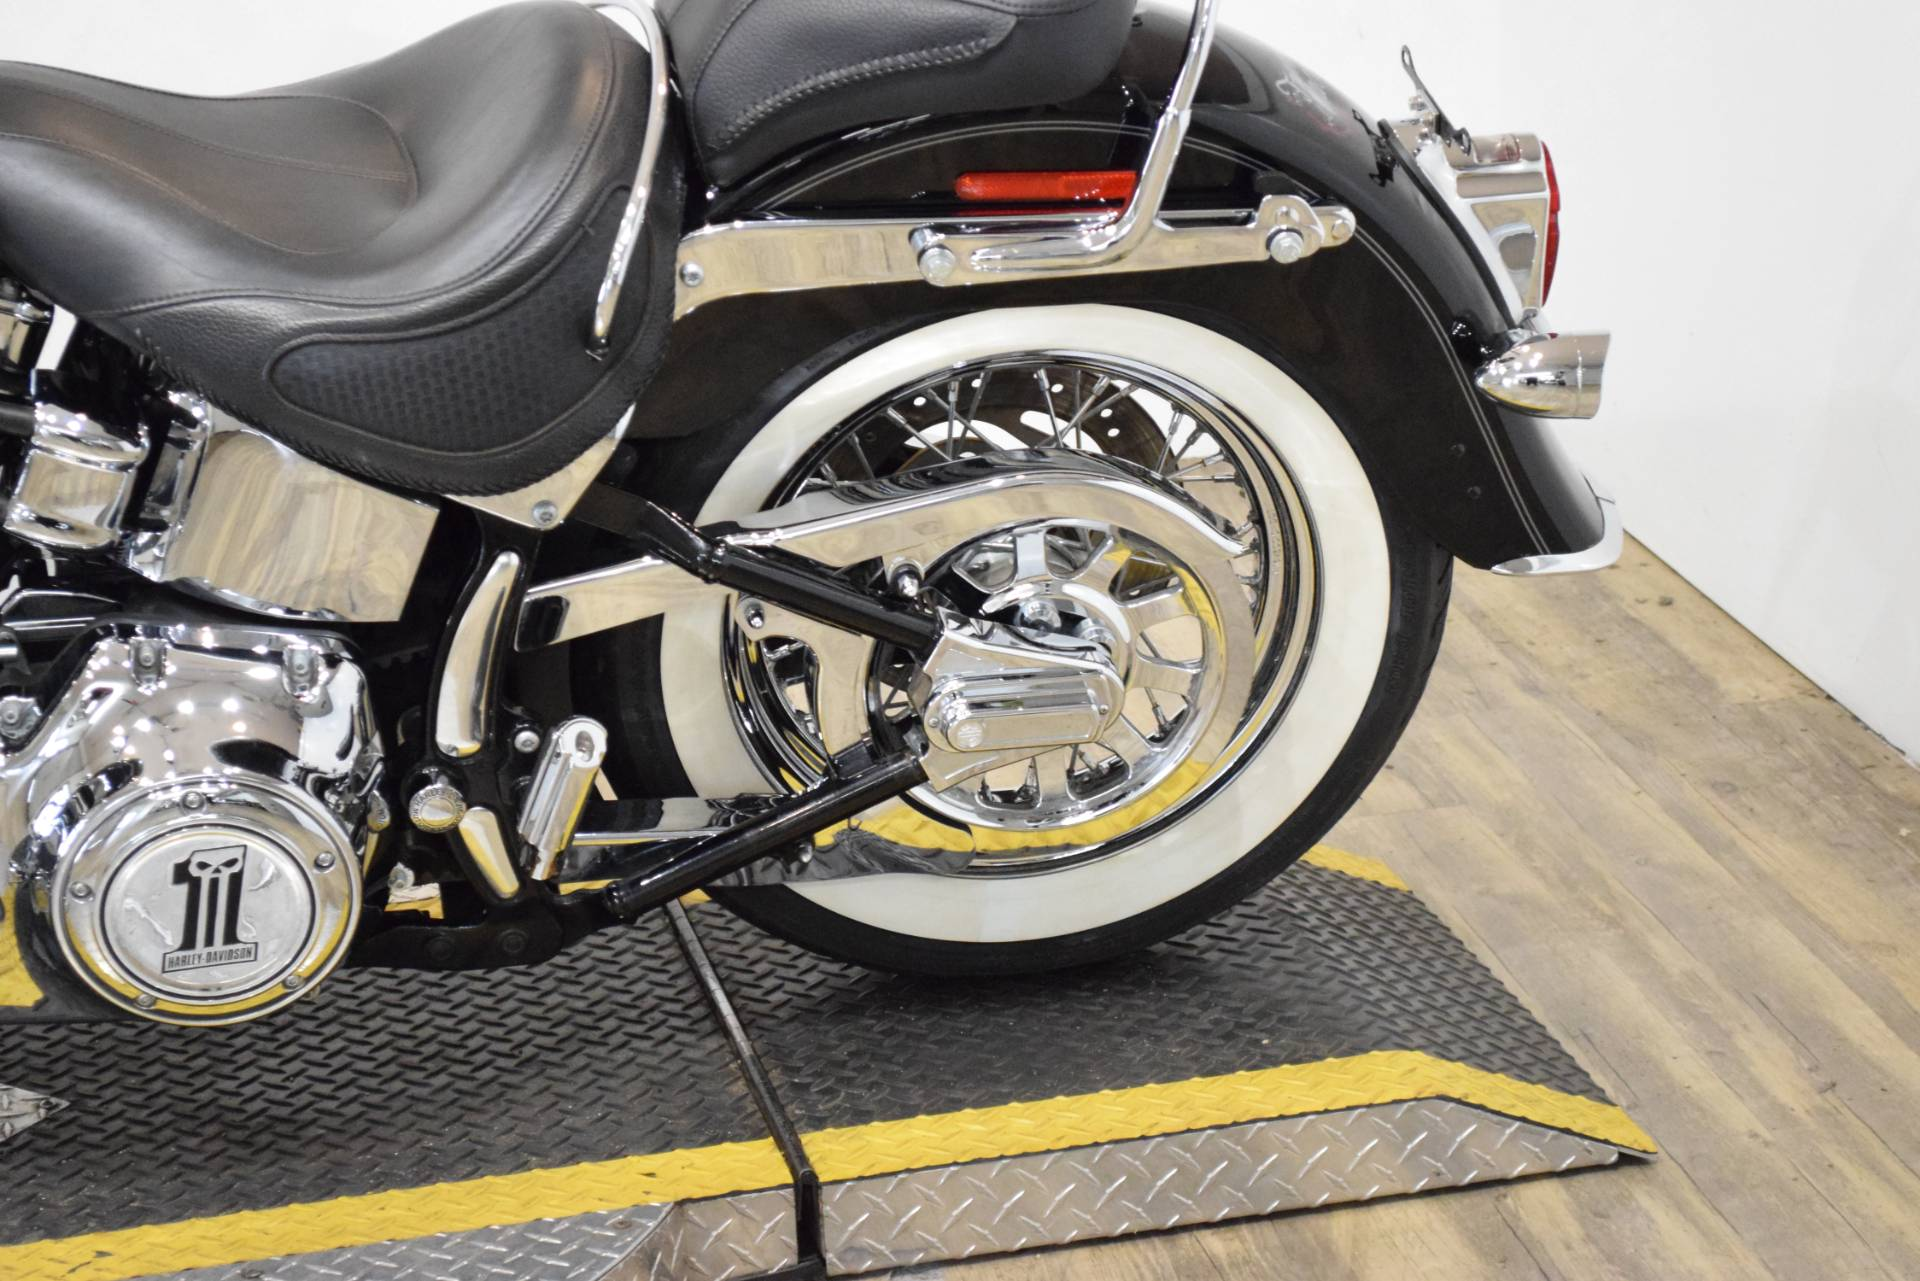 2007 Harley-Davidson Softail Deluxe in Wauconda, Illinois - Photo 17